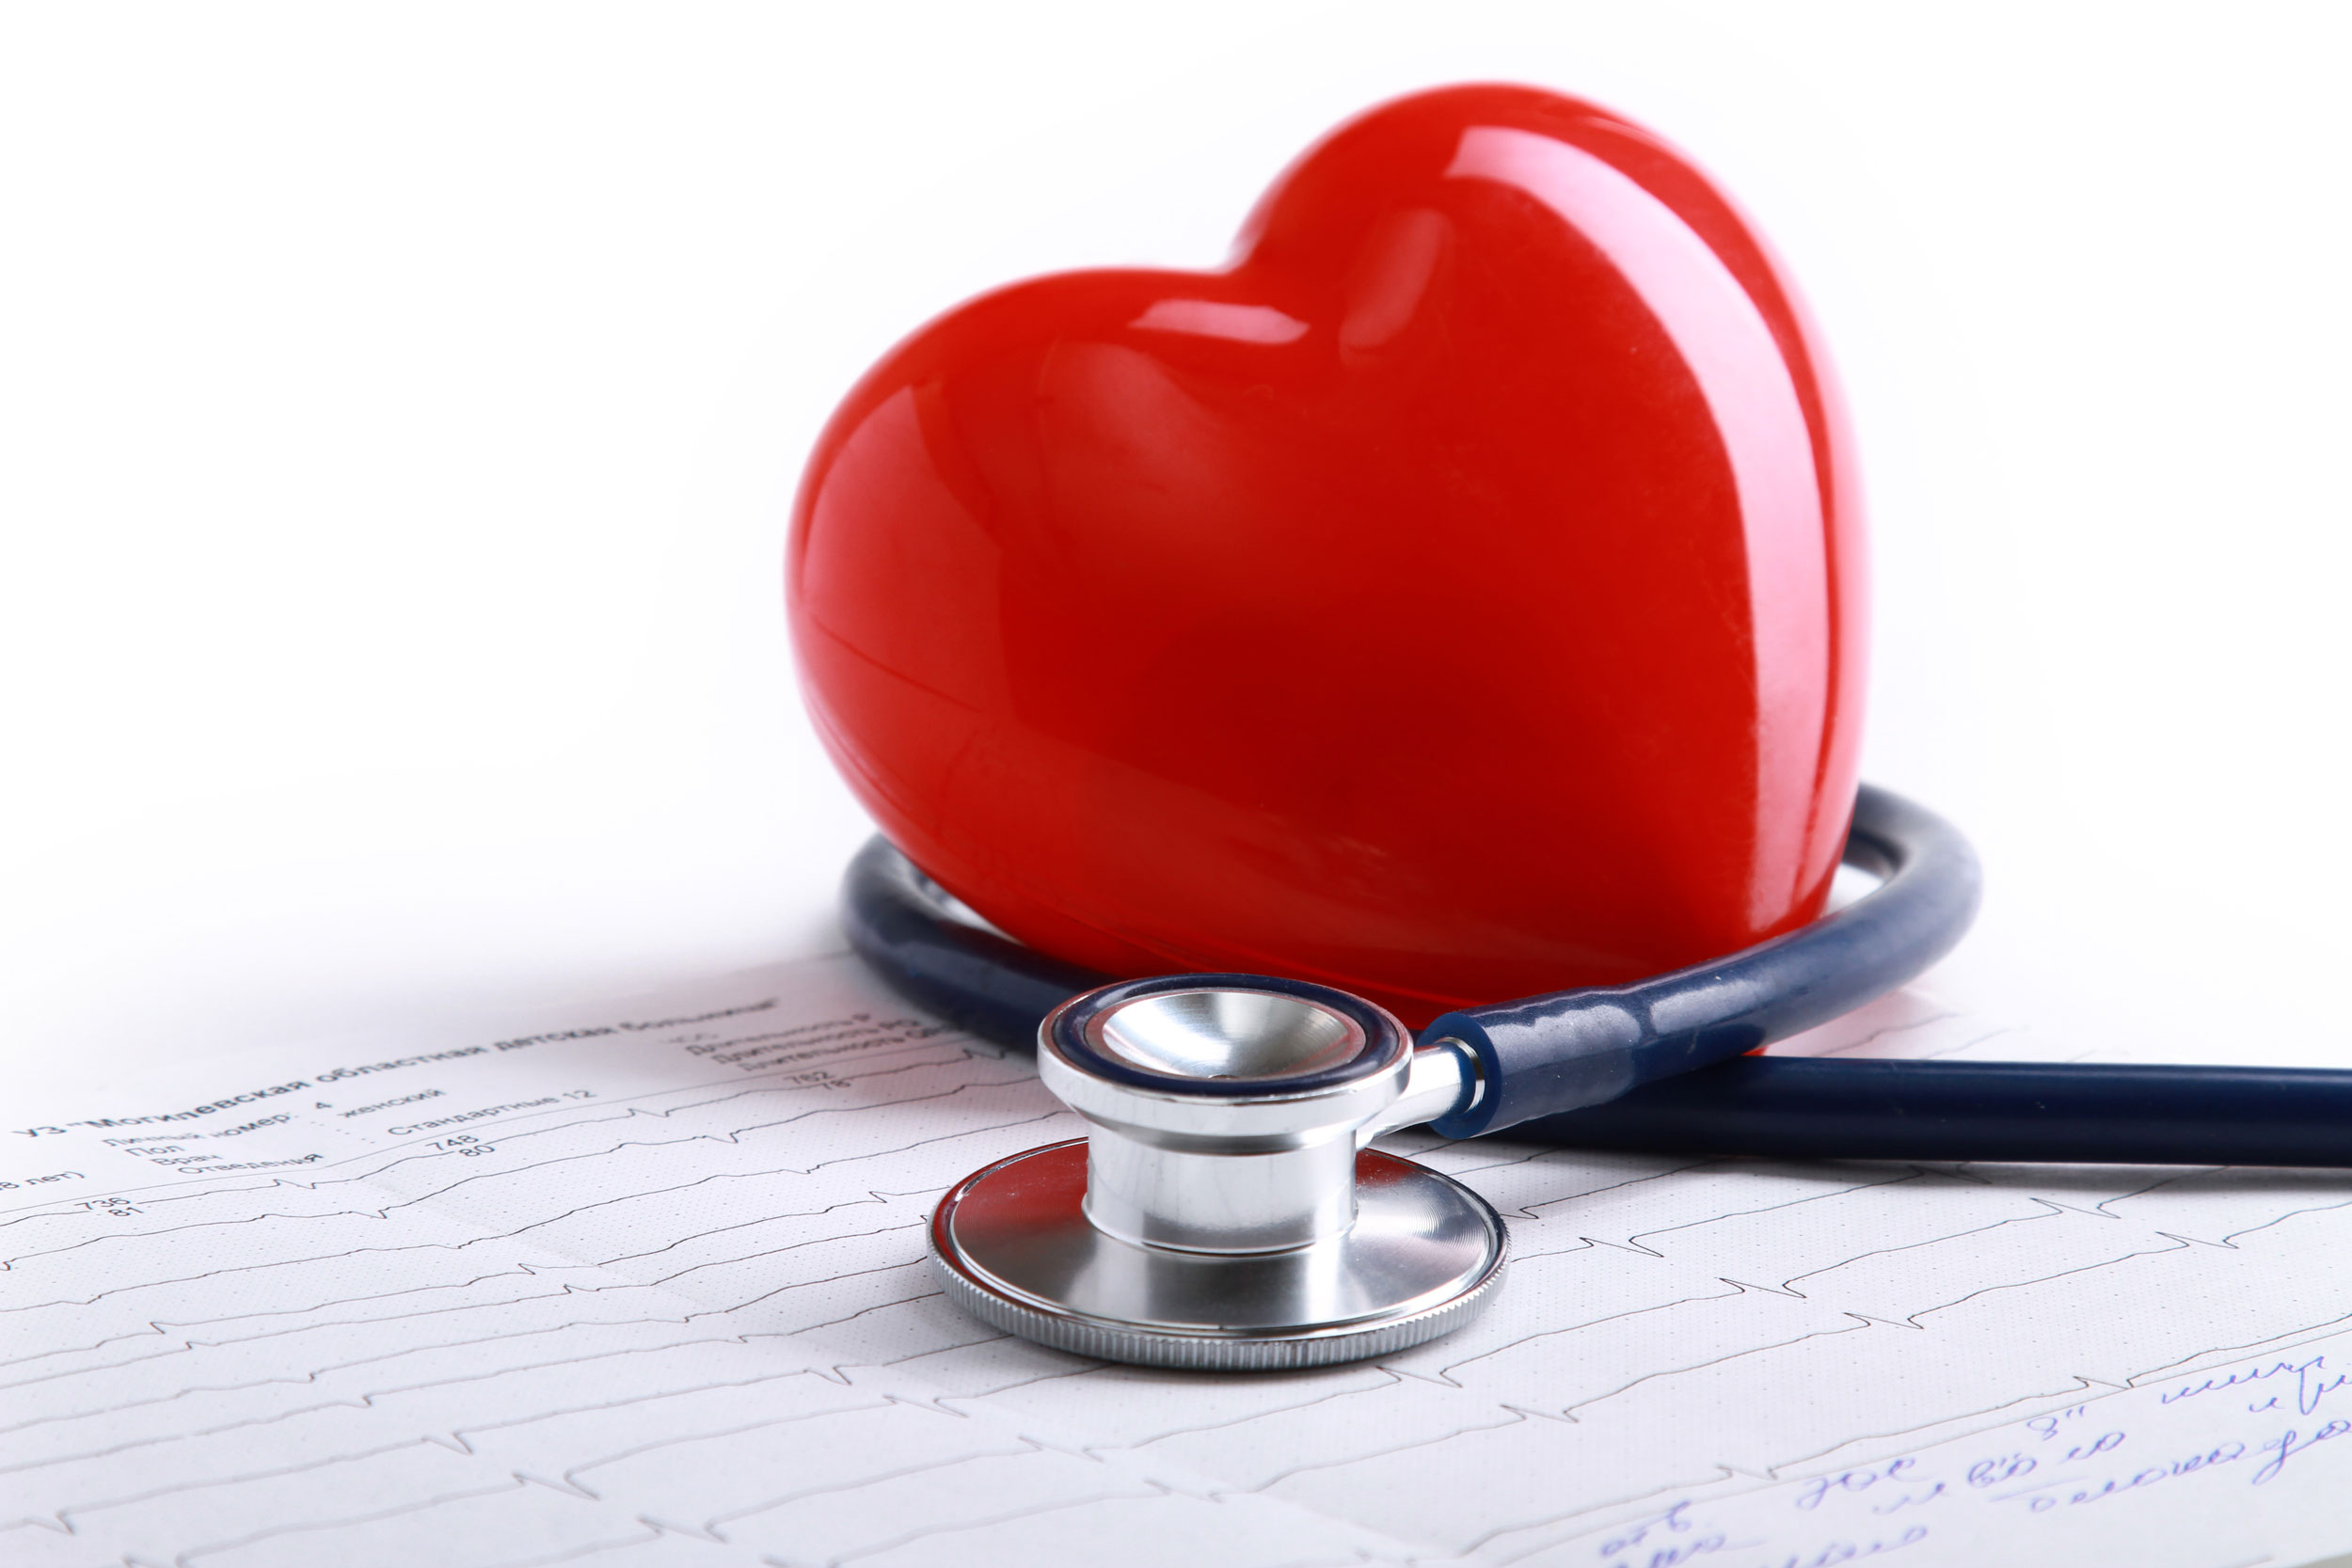 How To Control The Heart Disease: For A Healthy Heart